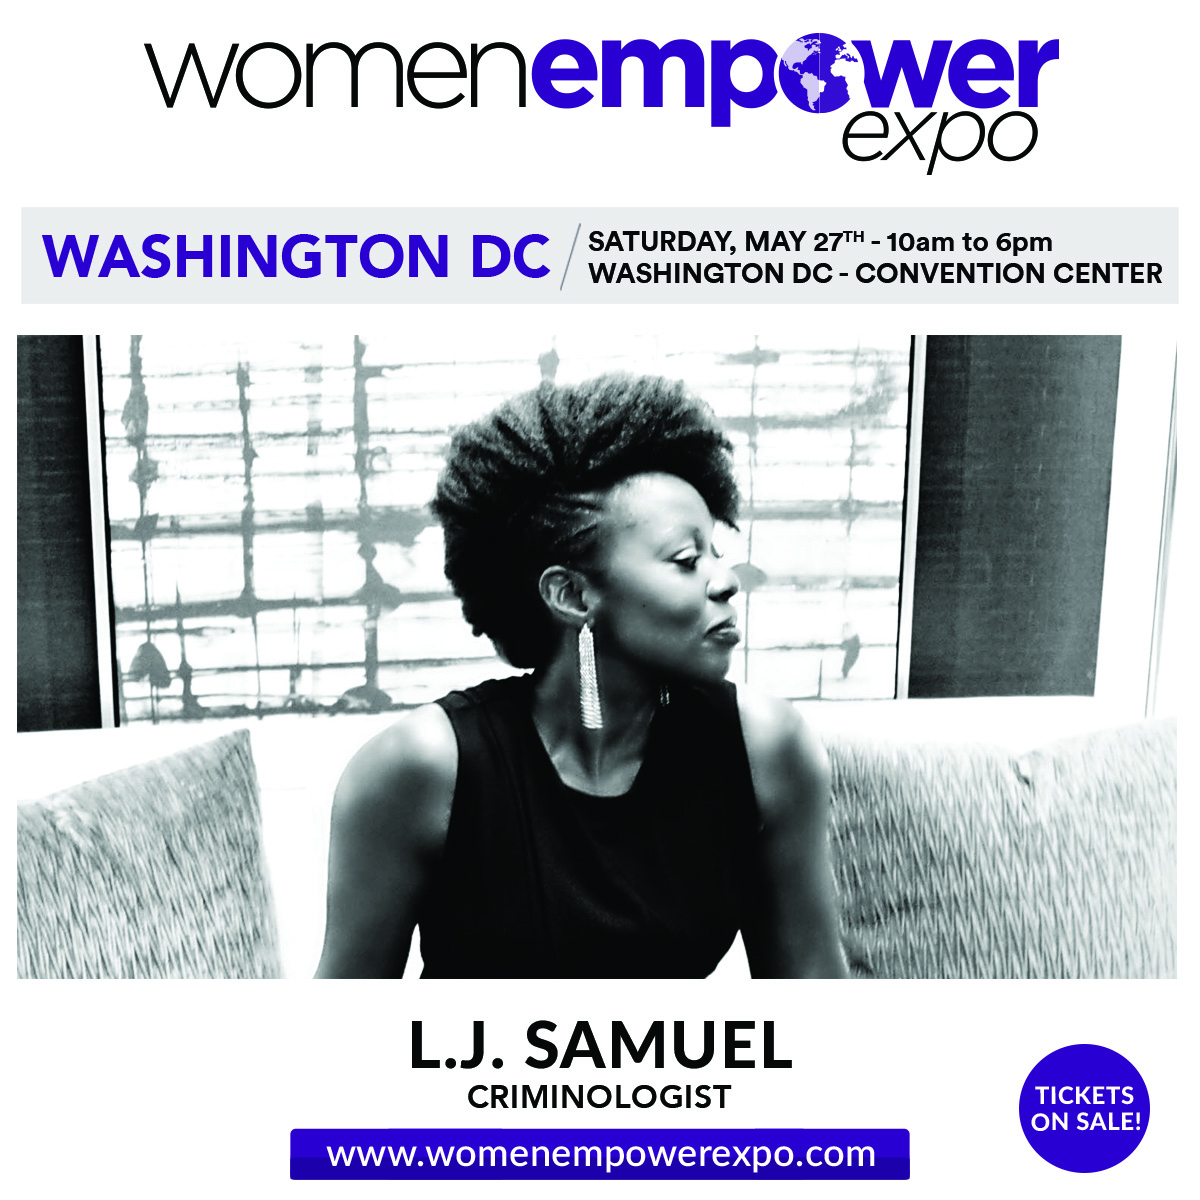 On Saturday, May 27, 2017 I led a self-defense workshop at the Women Empower Expo at the Washington, DC Convention Center and taught women how to protect themselves inside and outside the home.